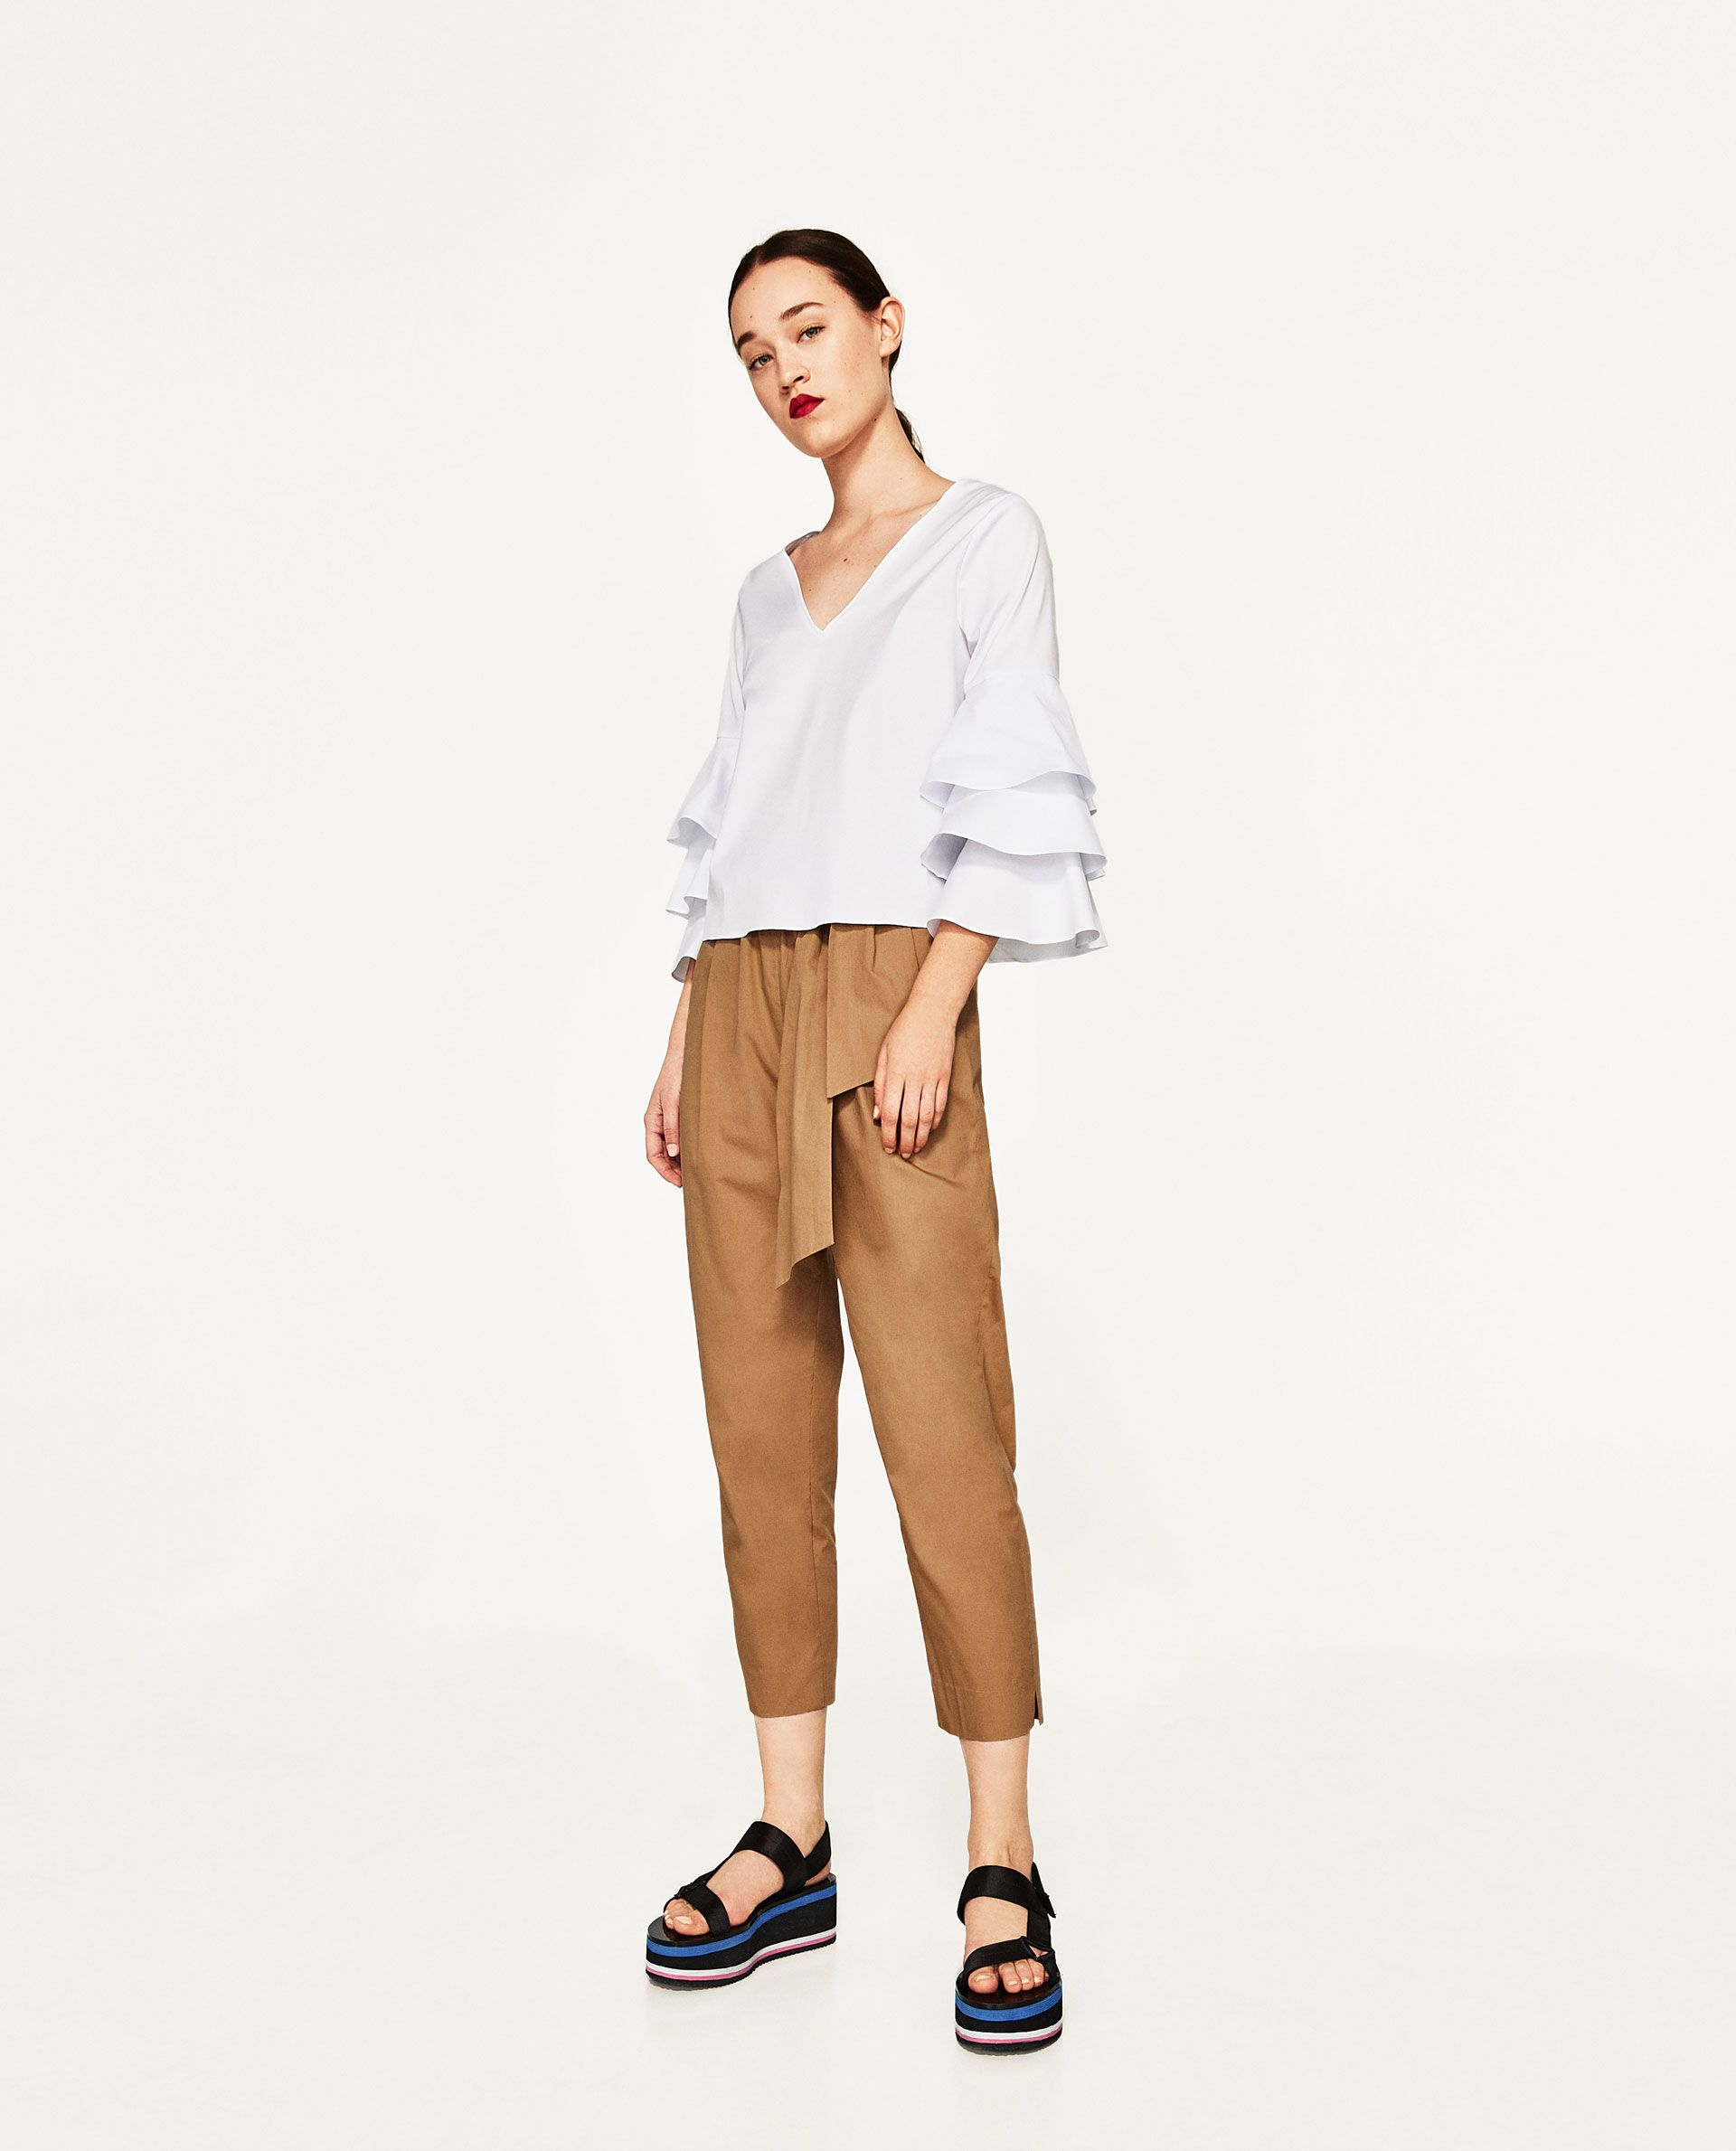 ZARA - WOMAN - RUFFLED POPLIN TOP